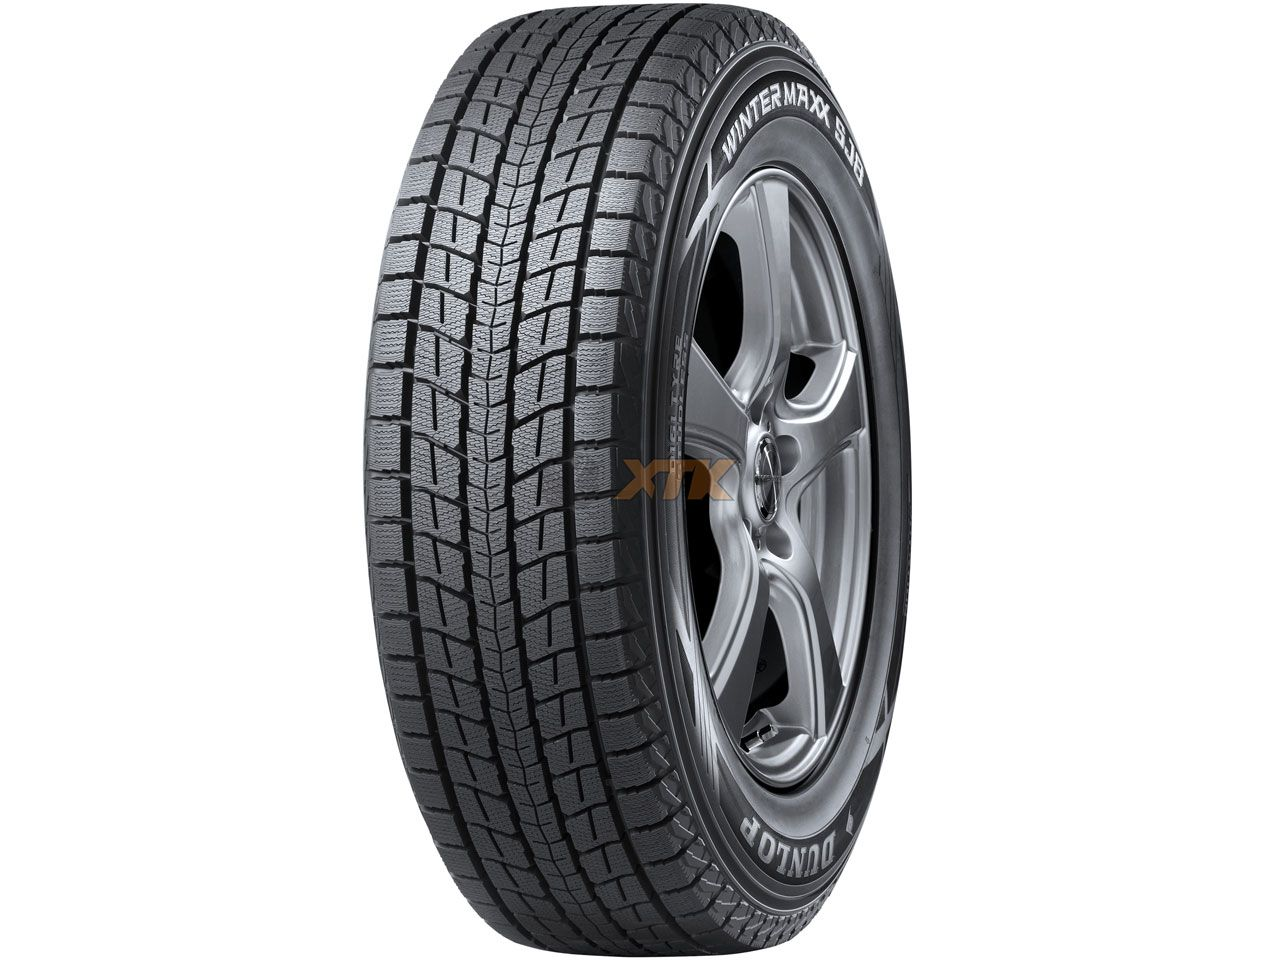 Автошина 235/55R17 99R Dunlop Winter MAXX SJ8